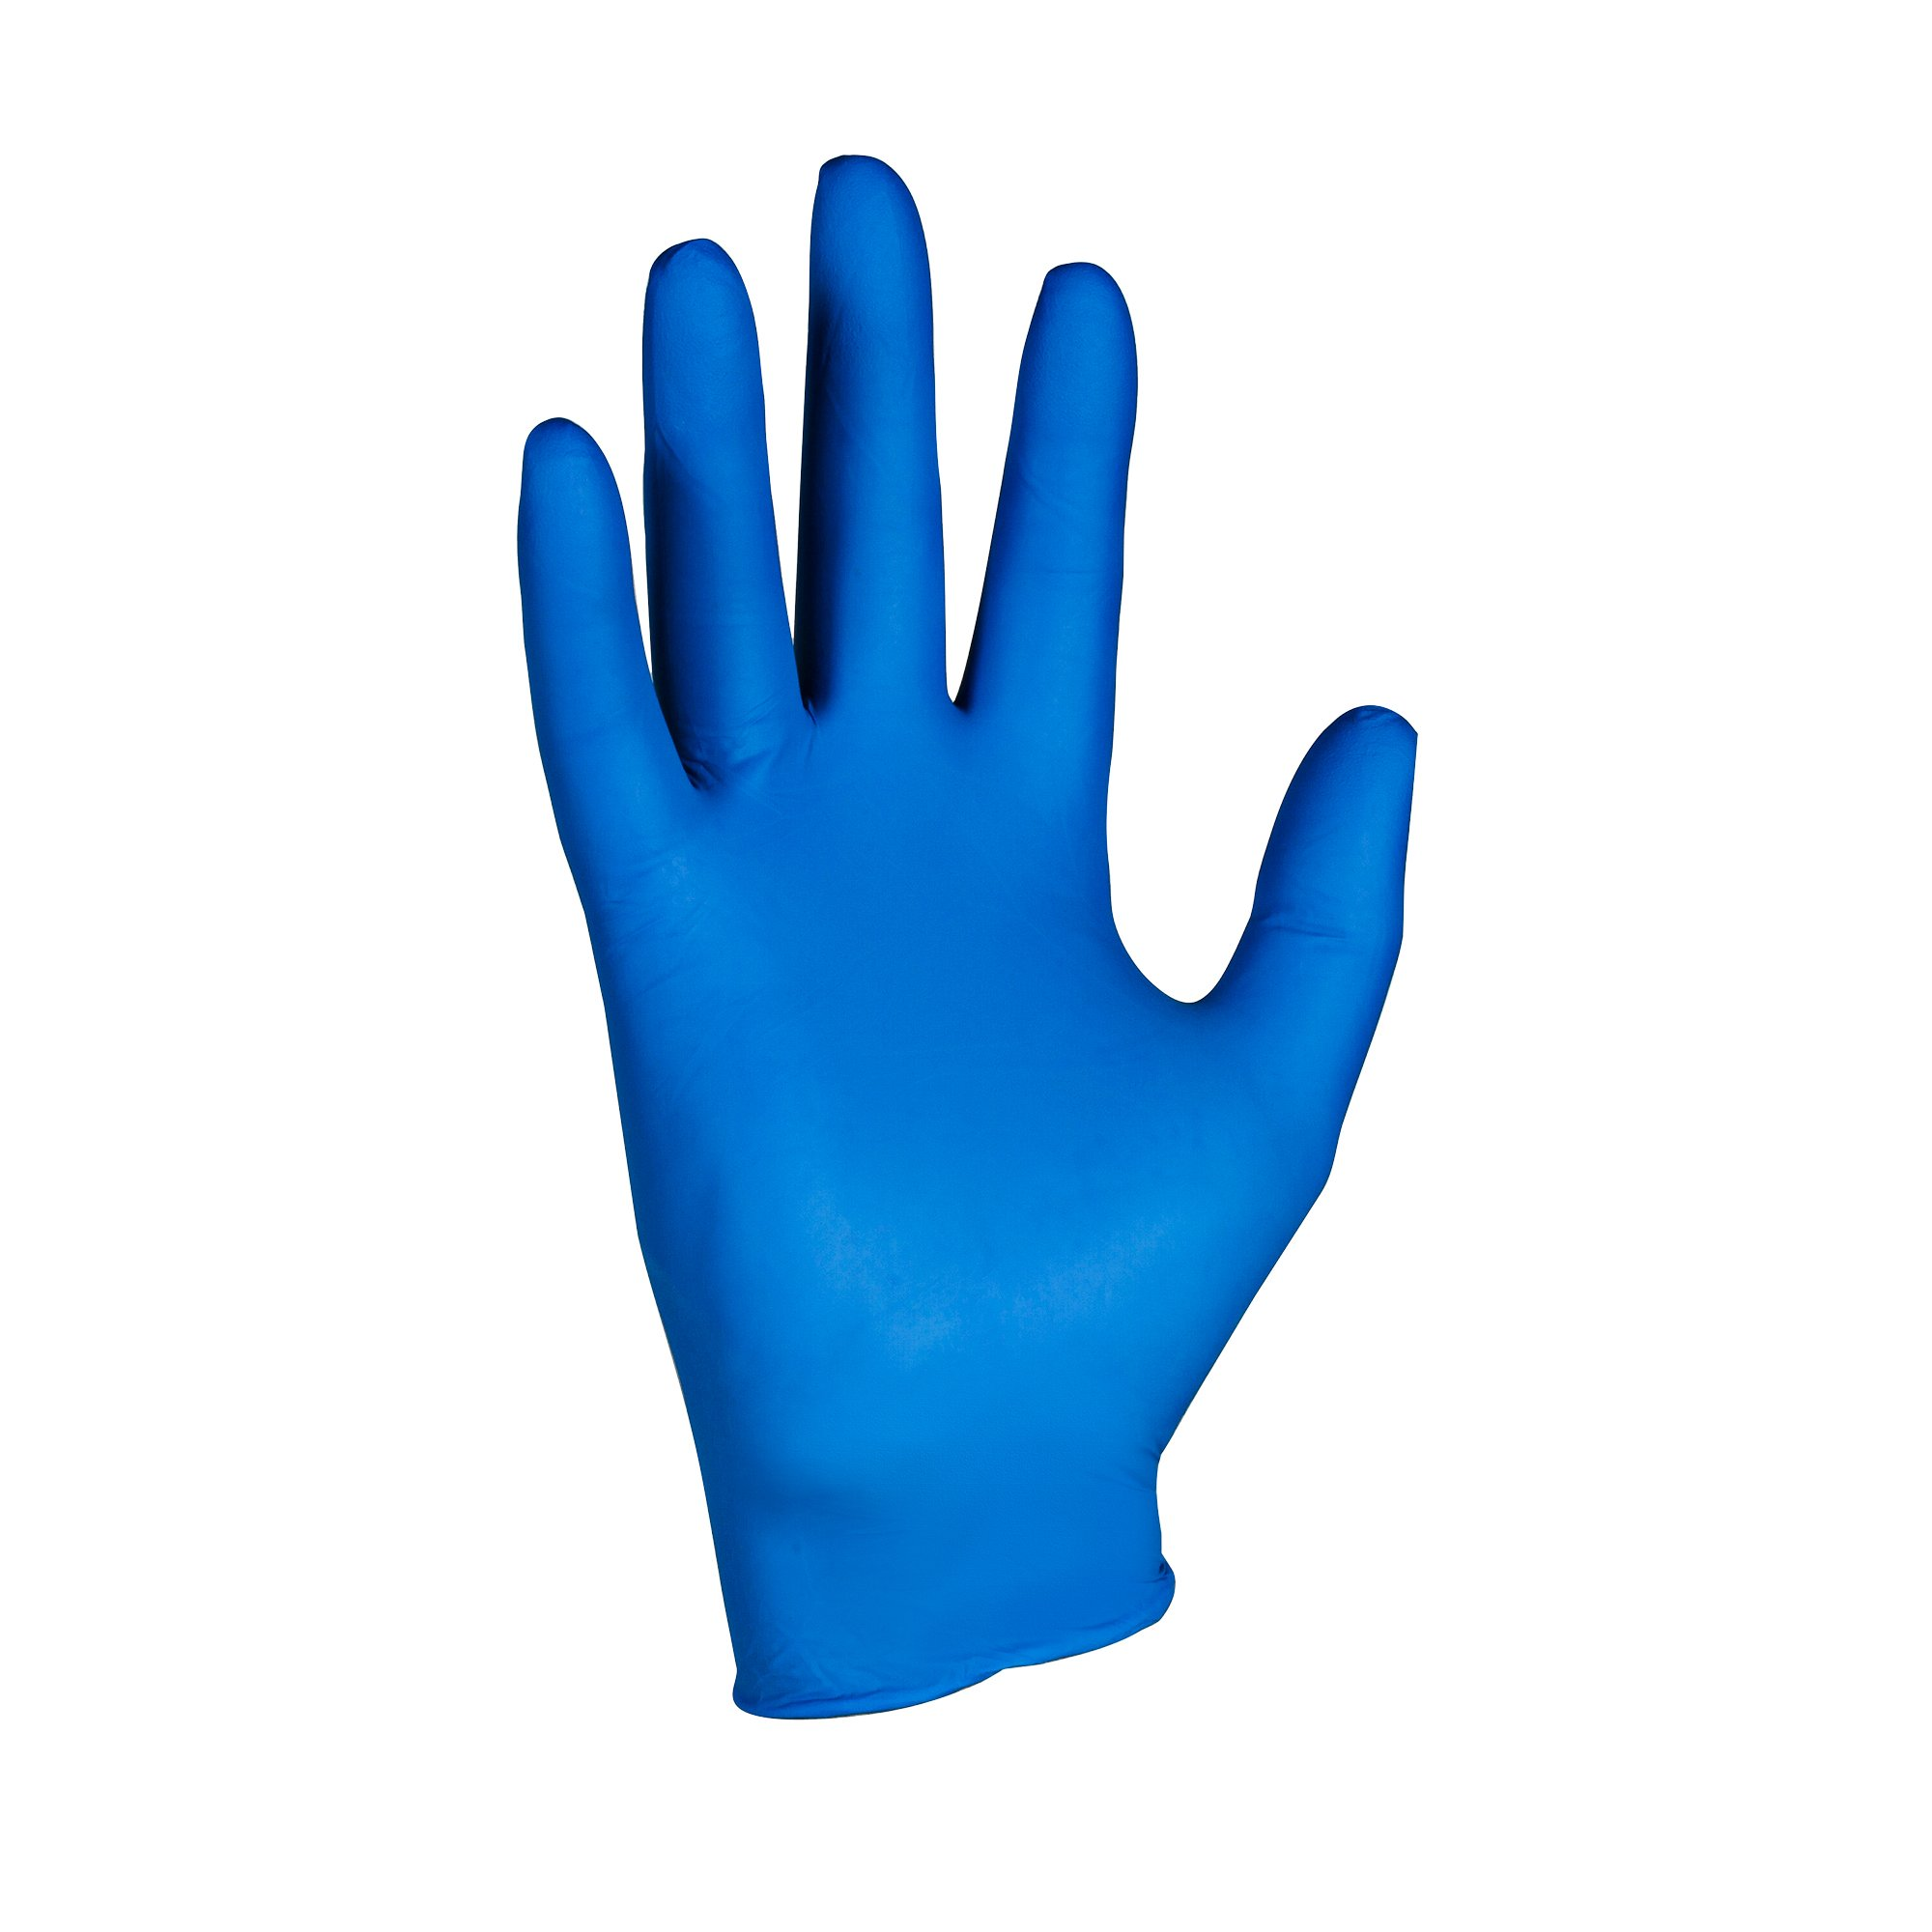 Kimberly-Clark KleenGuard G10 Nitrile Arctic Glove, Powder Free, 9-1/2'' Length, Medium, Blue (10 Packs of 200 gloves)